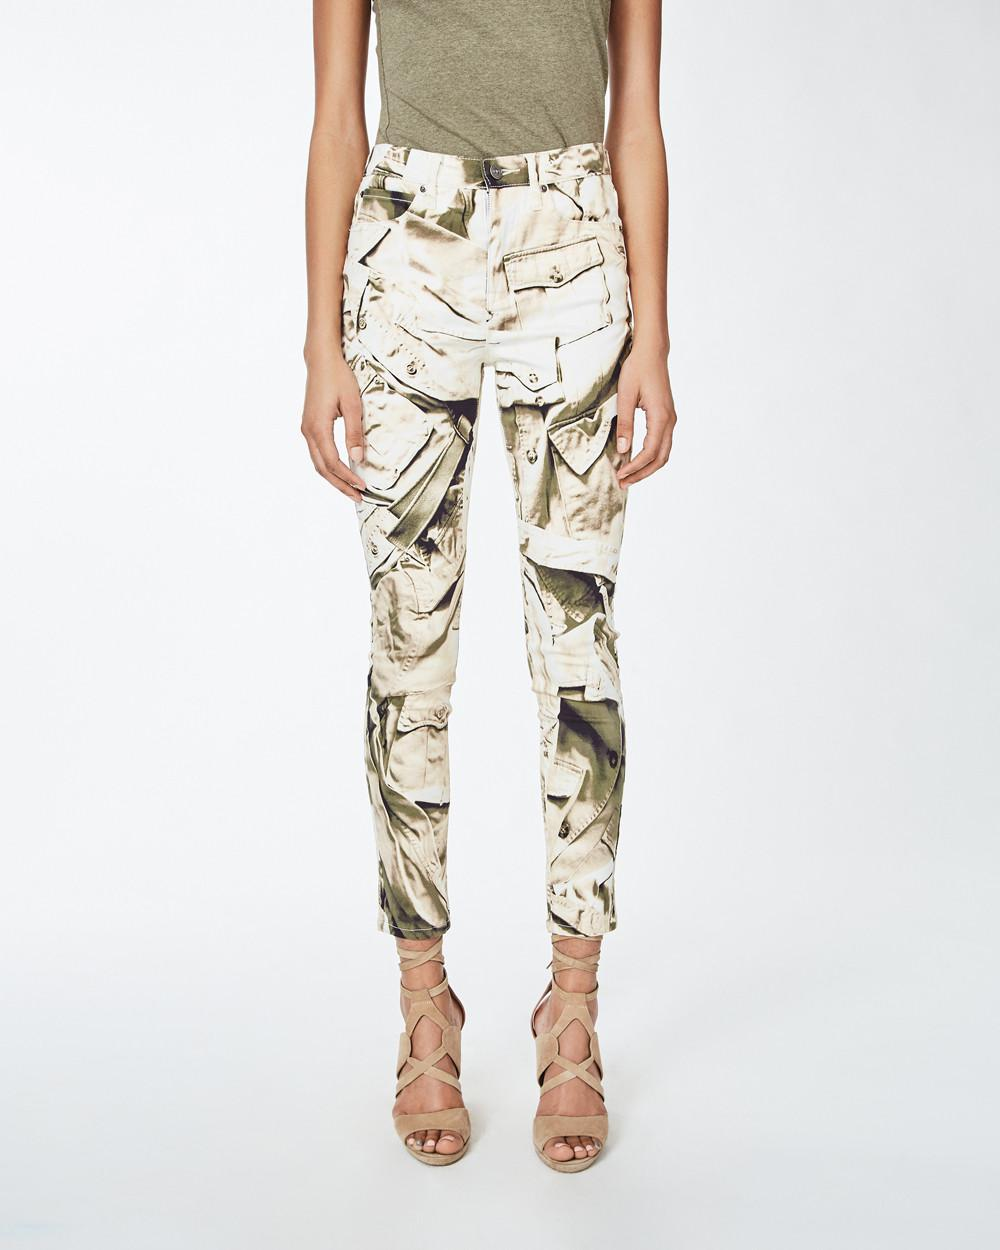 Official Site Cheap Price Recommend For Sale Nicole Miller safari camoflage trousers Cheap Sale For Nice nszT48